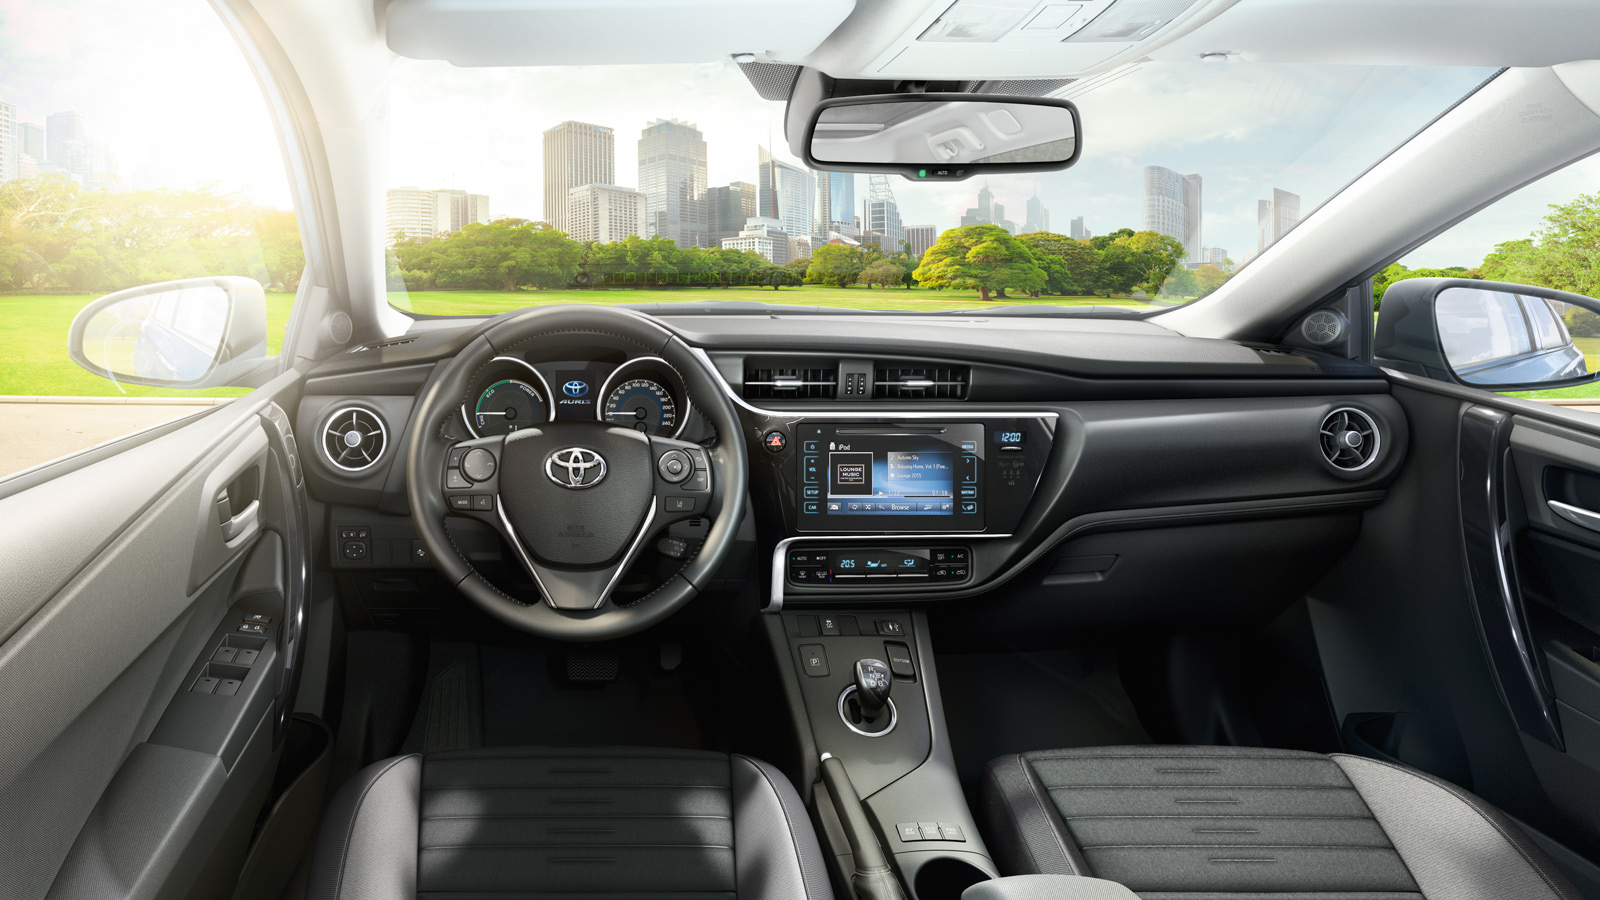 Toyota Auris, interior, leather steering, front seating area & all other functions normally at the front of car on display, daytime city outdoor background shot.